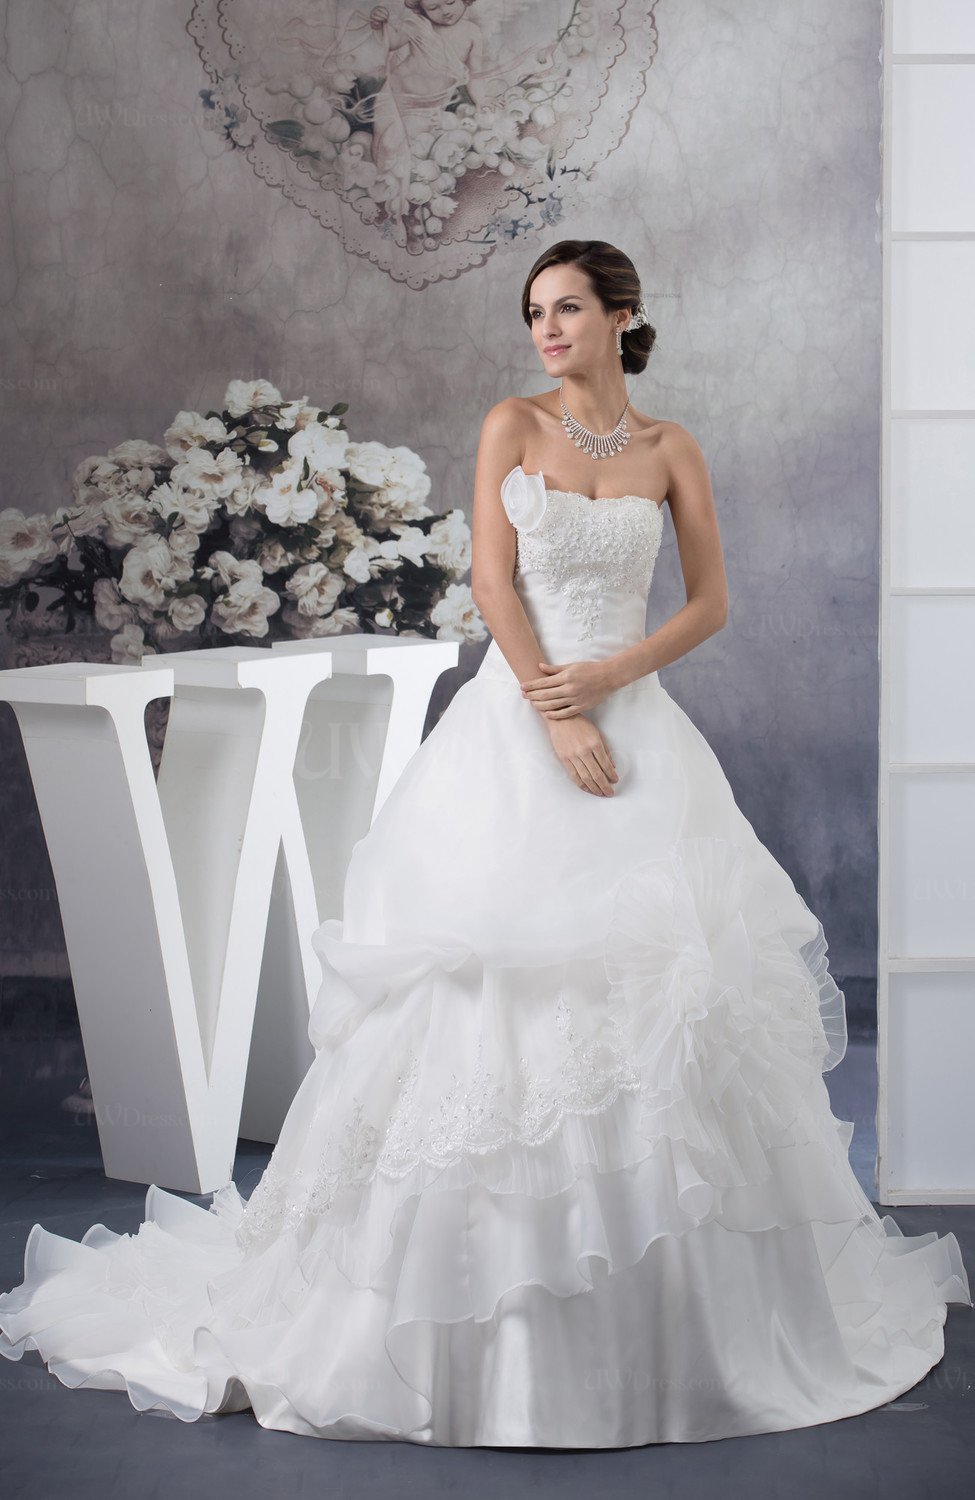 Allure Bridal Gowns Disney Princess Ball Gown Luxury Gorgeous Full ...